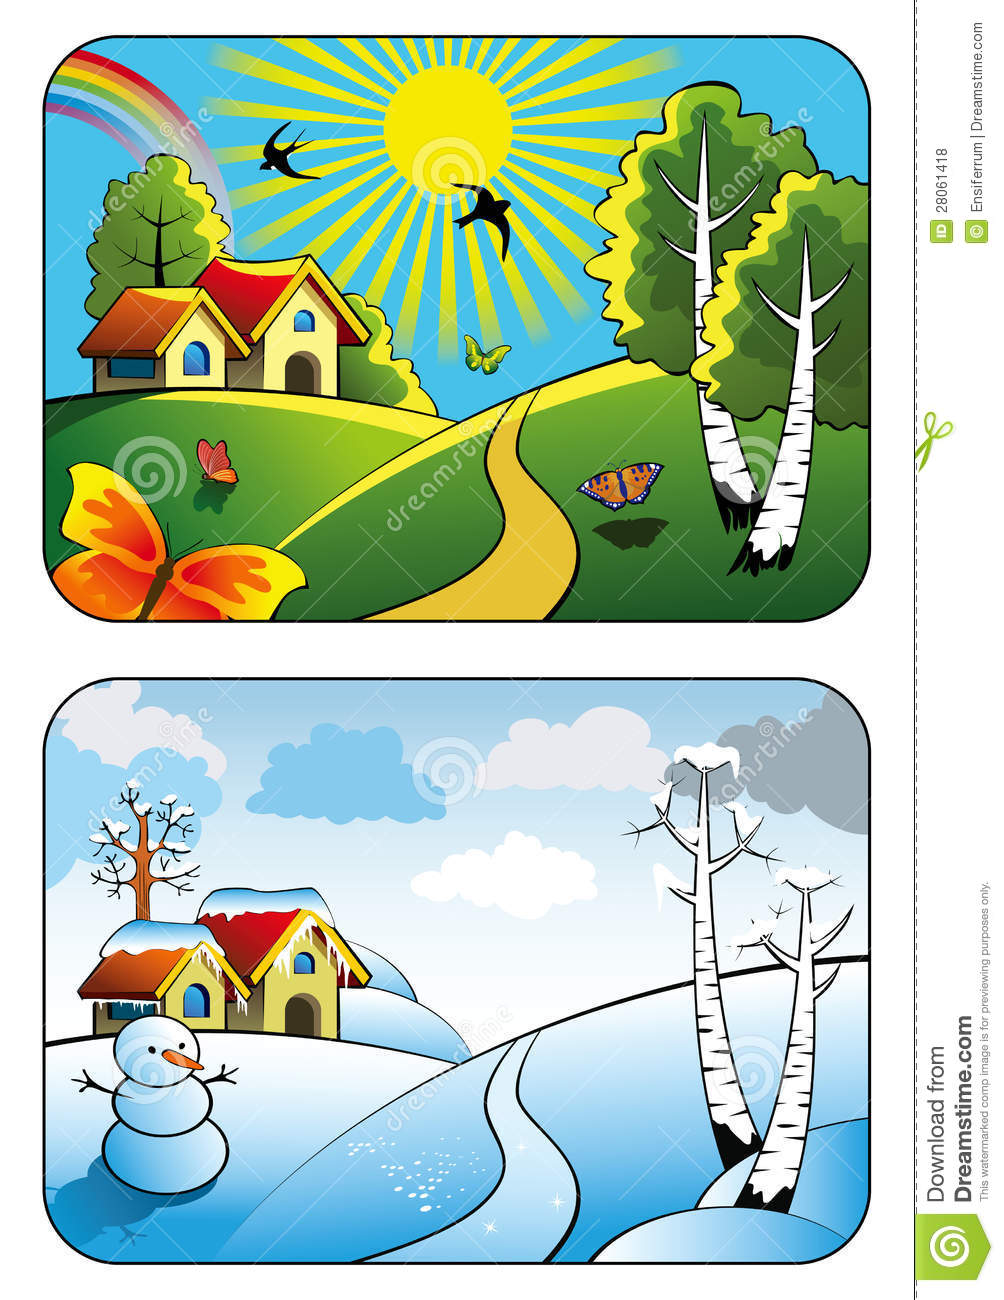 Winter And Summer Landscape Royalty Free Stock Photos   Image